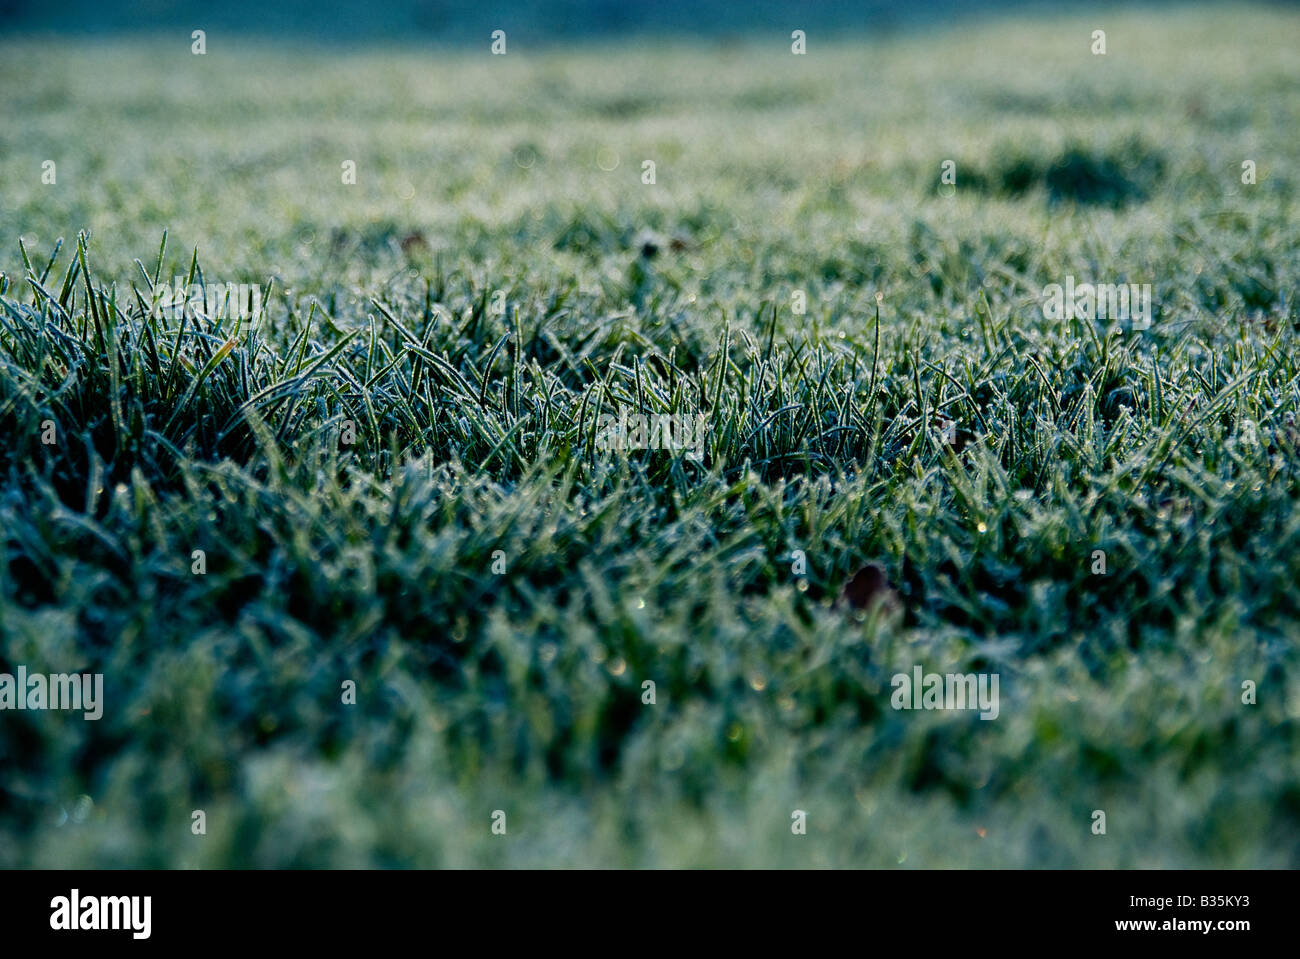 Dewy lawn - Stock Image